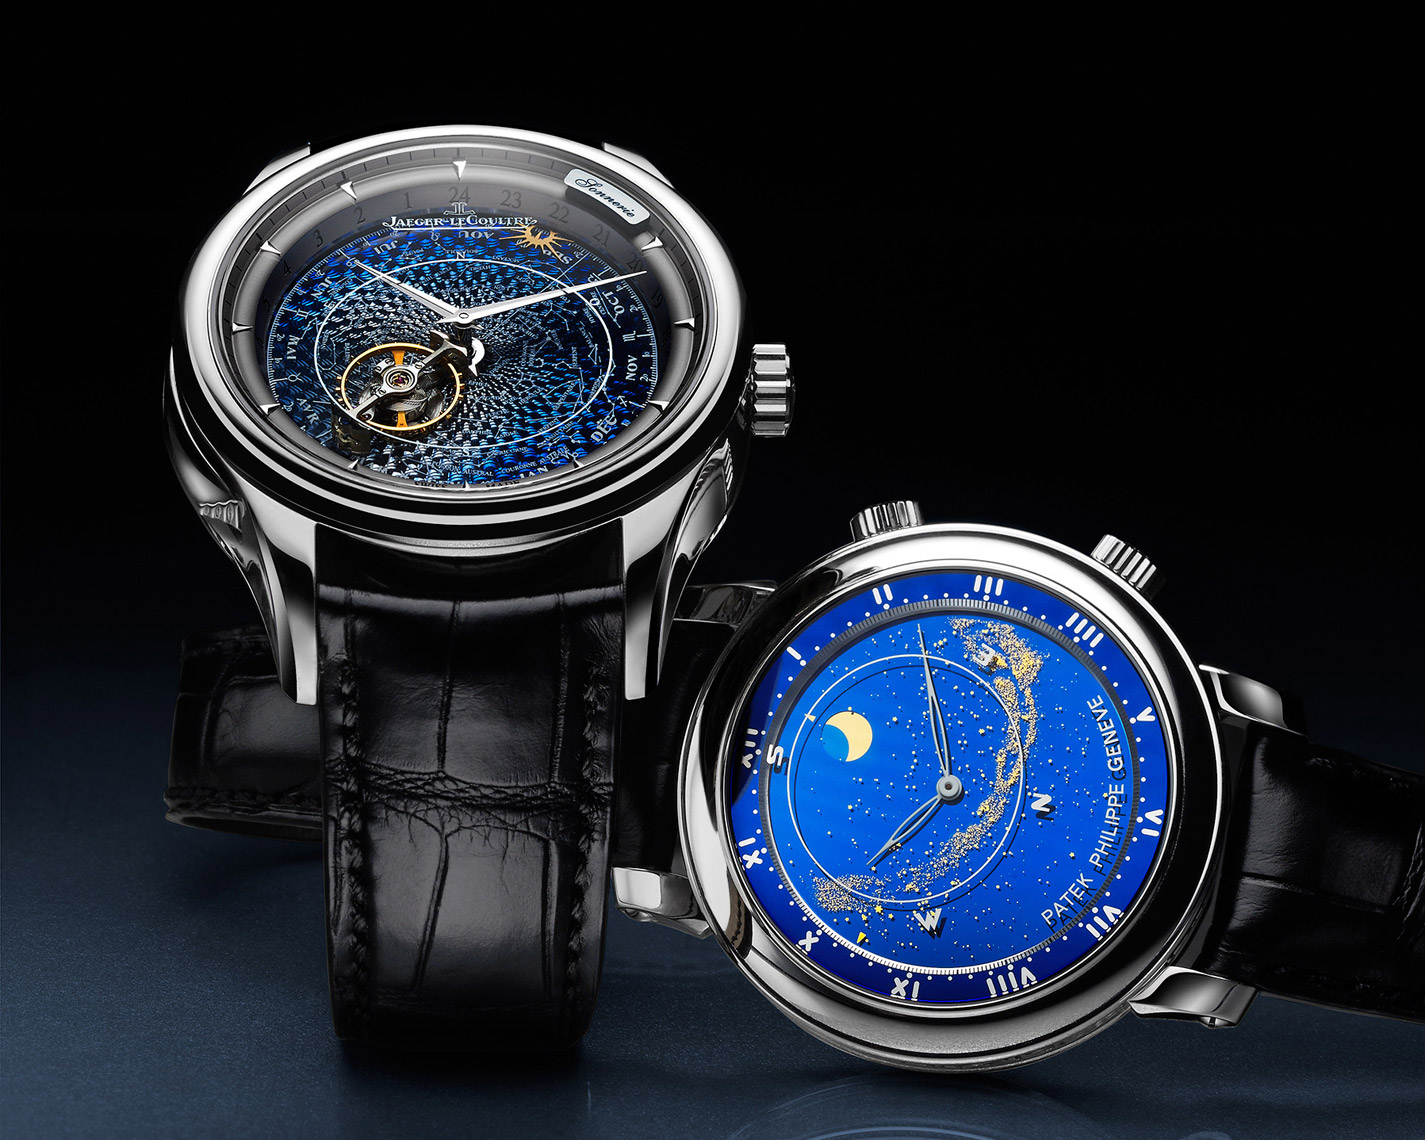 Mechanical timepiece photography - Jaeger LeCoultre & Patek Philippe - watch photographer Kliton Ceku